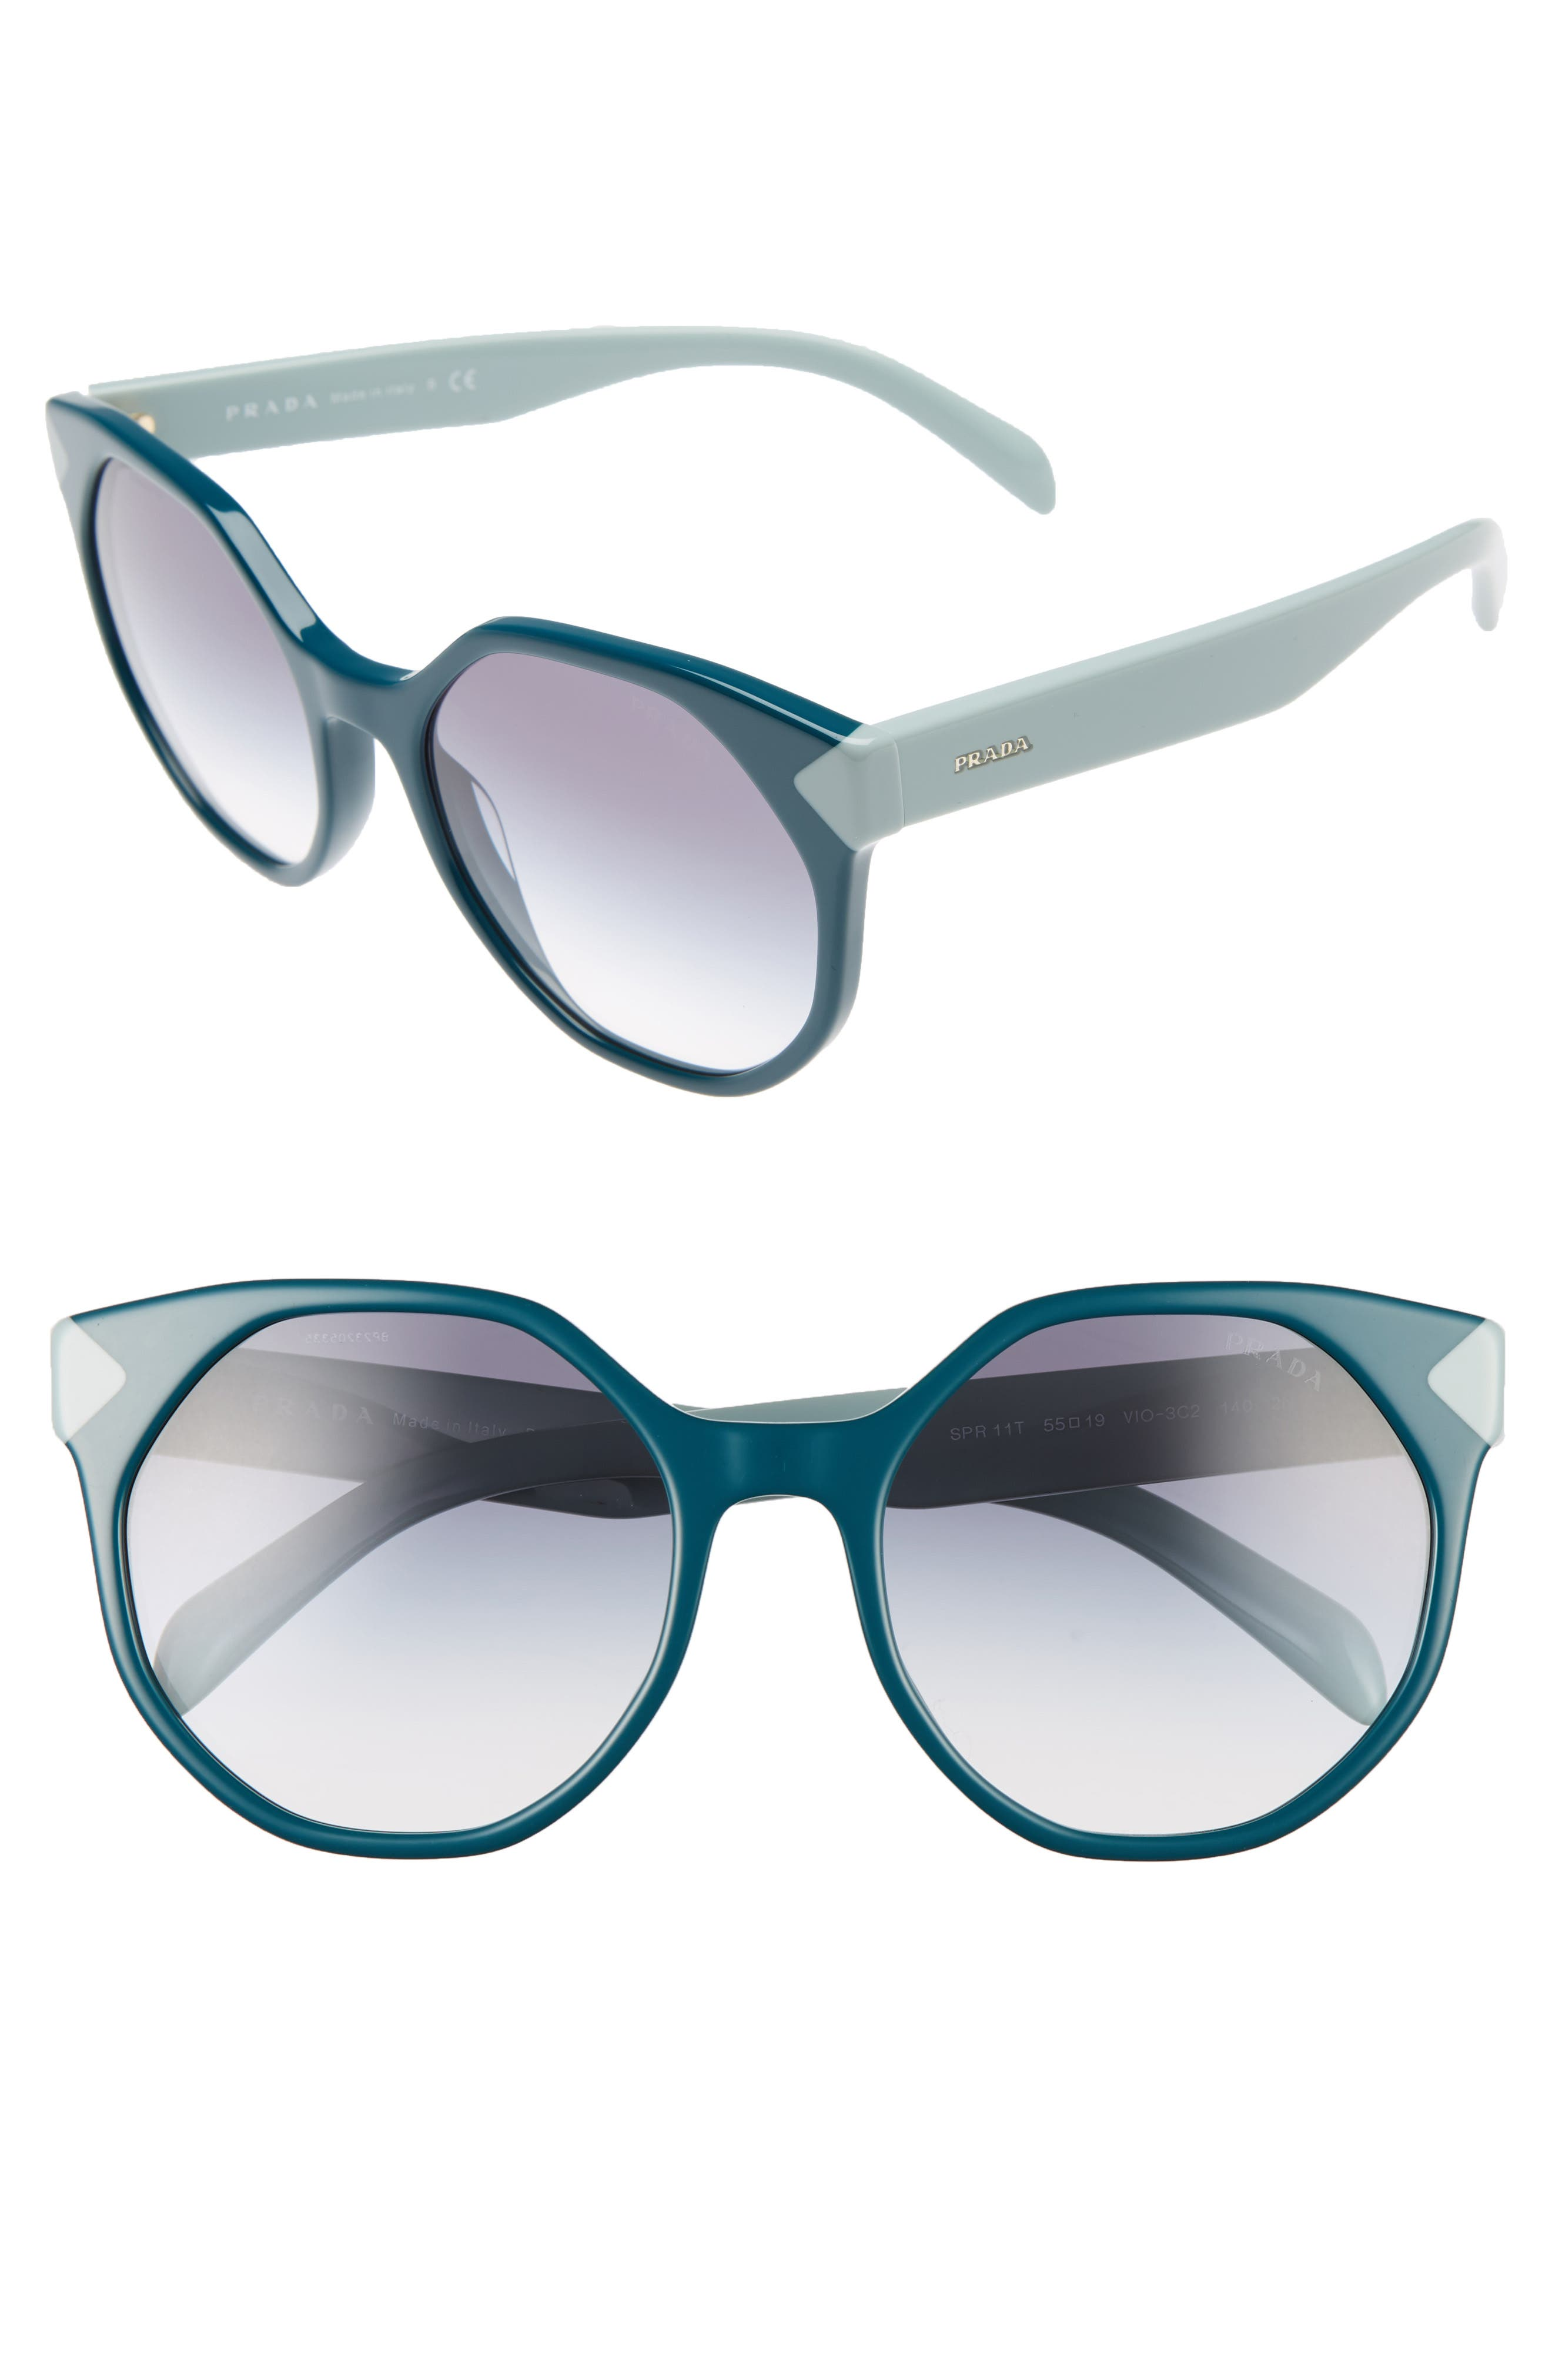 55mm Gradient Geometric Sunglasses,                         Main,                         color, Green